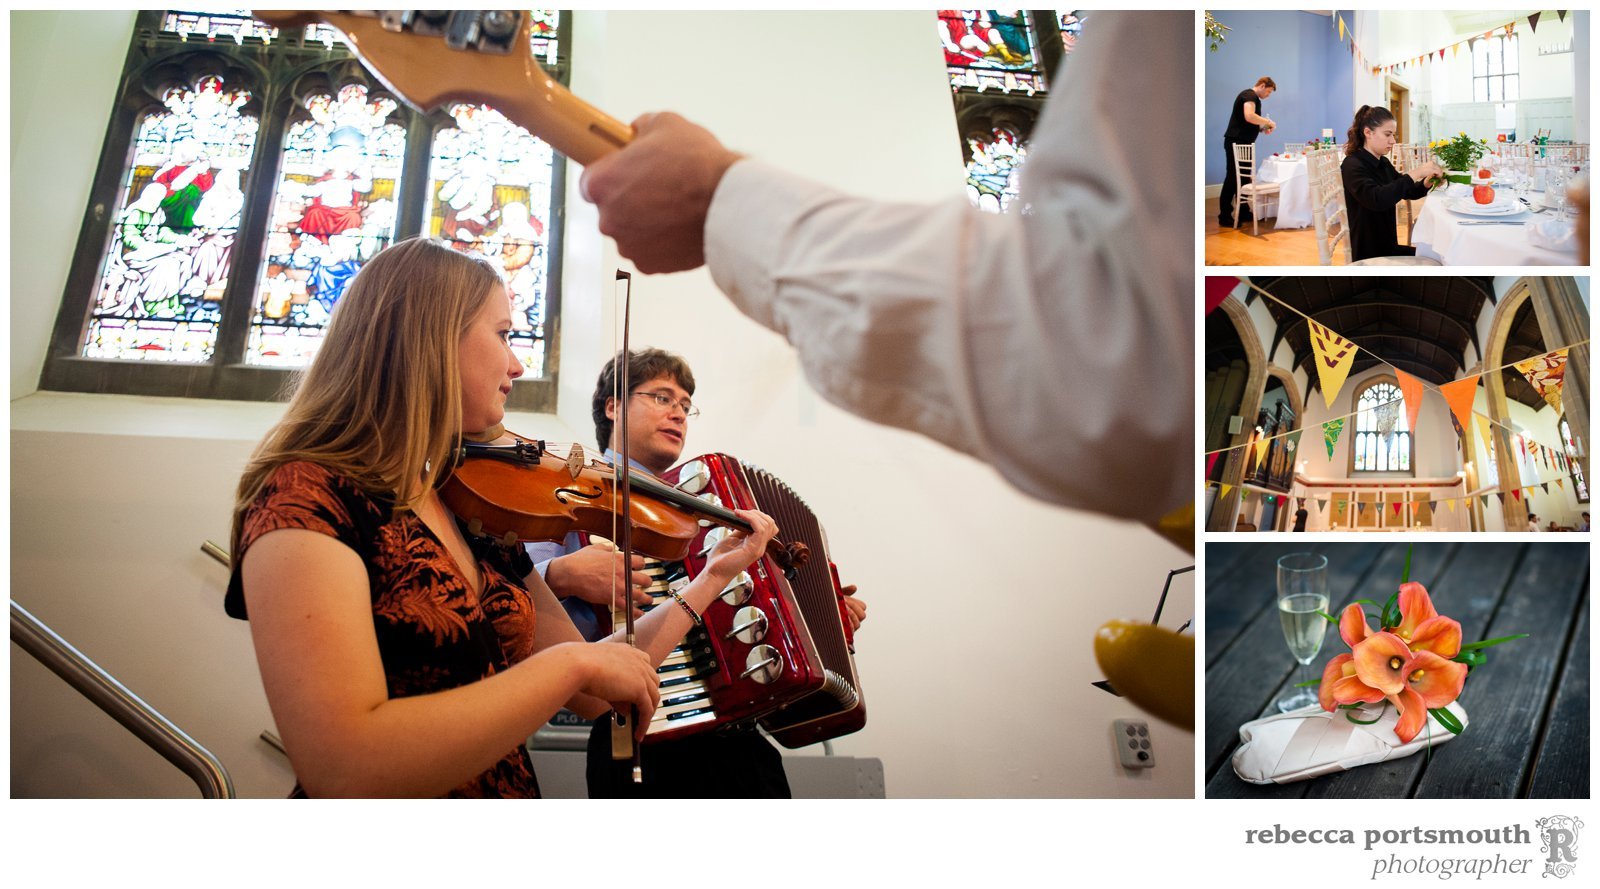 Friends of the bride and groom play music to entertain guests at this Cambridge wedding.